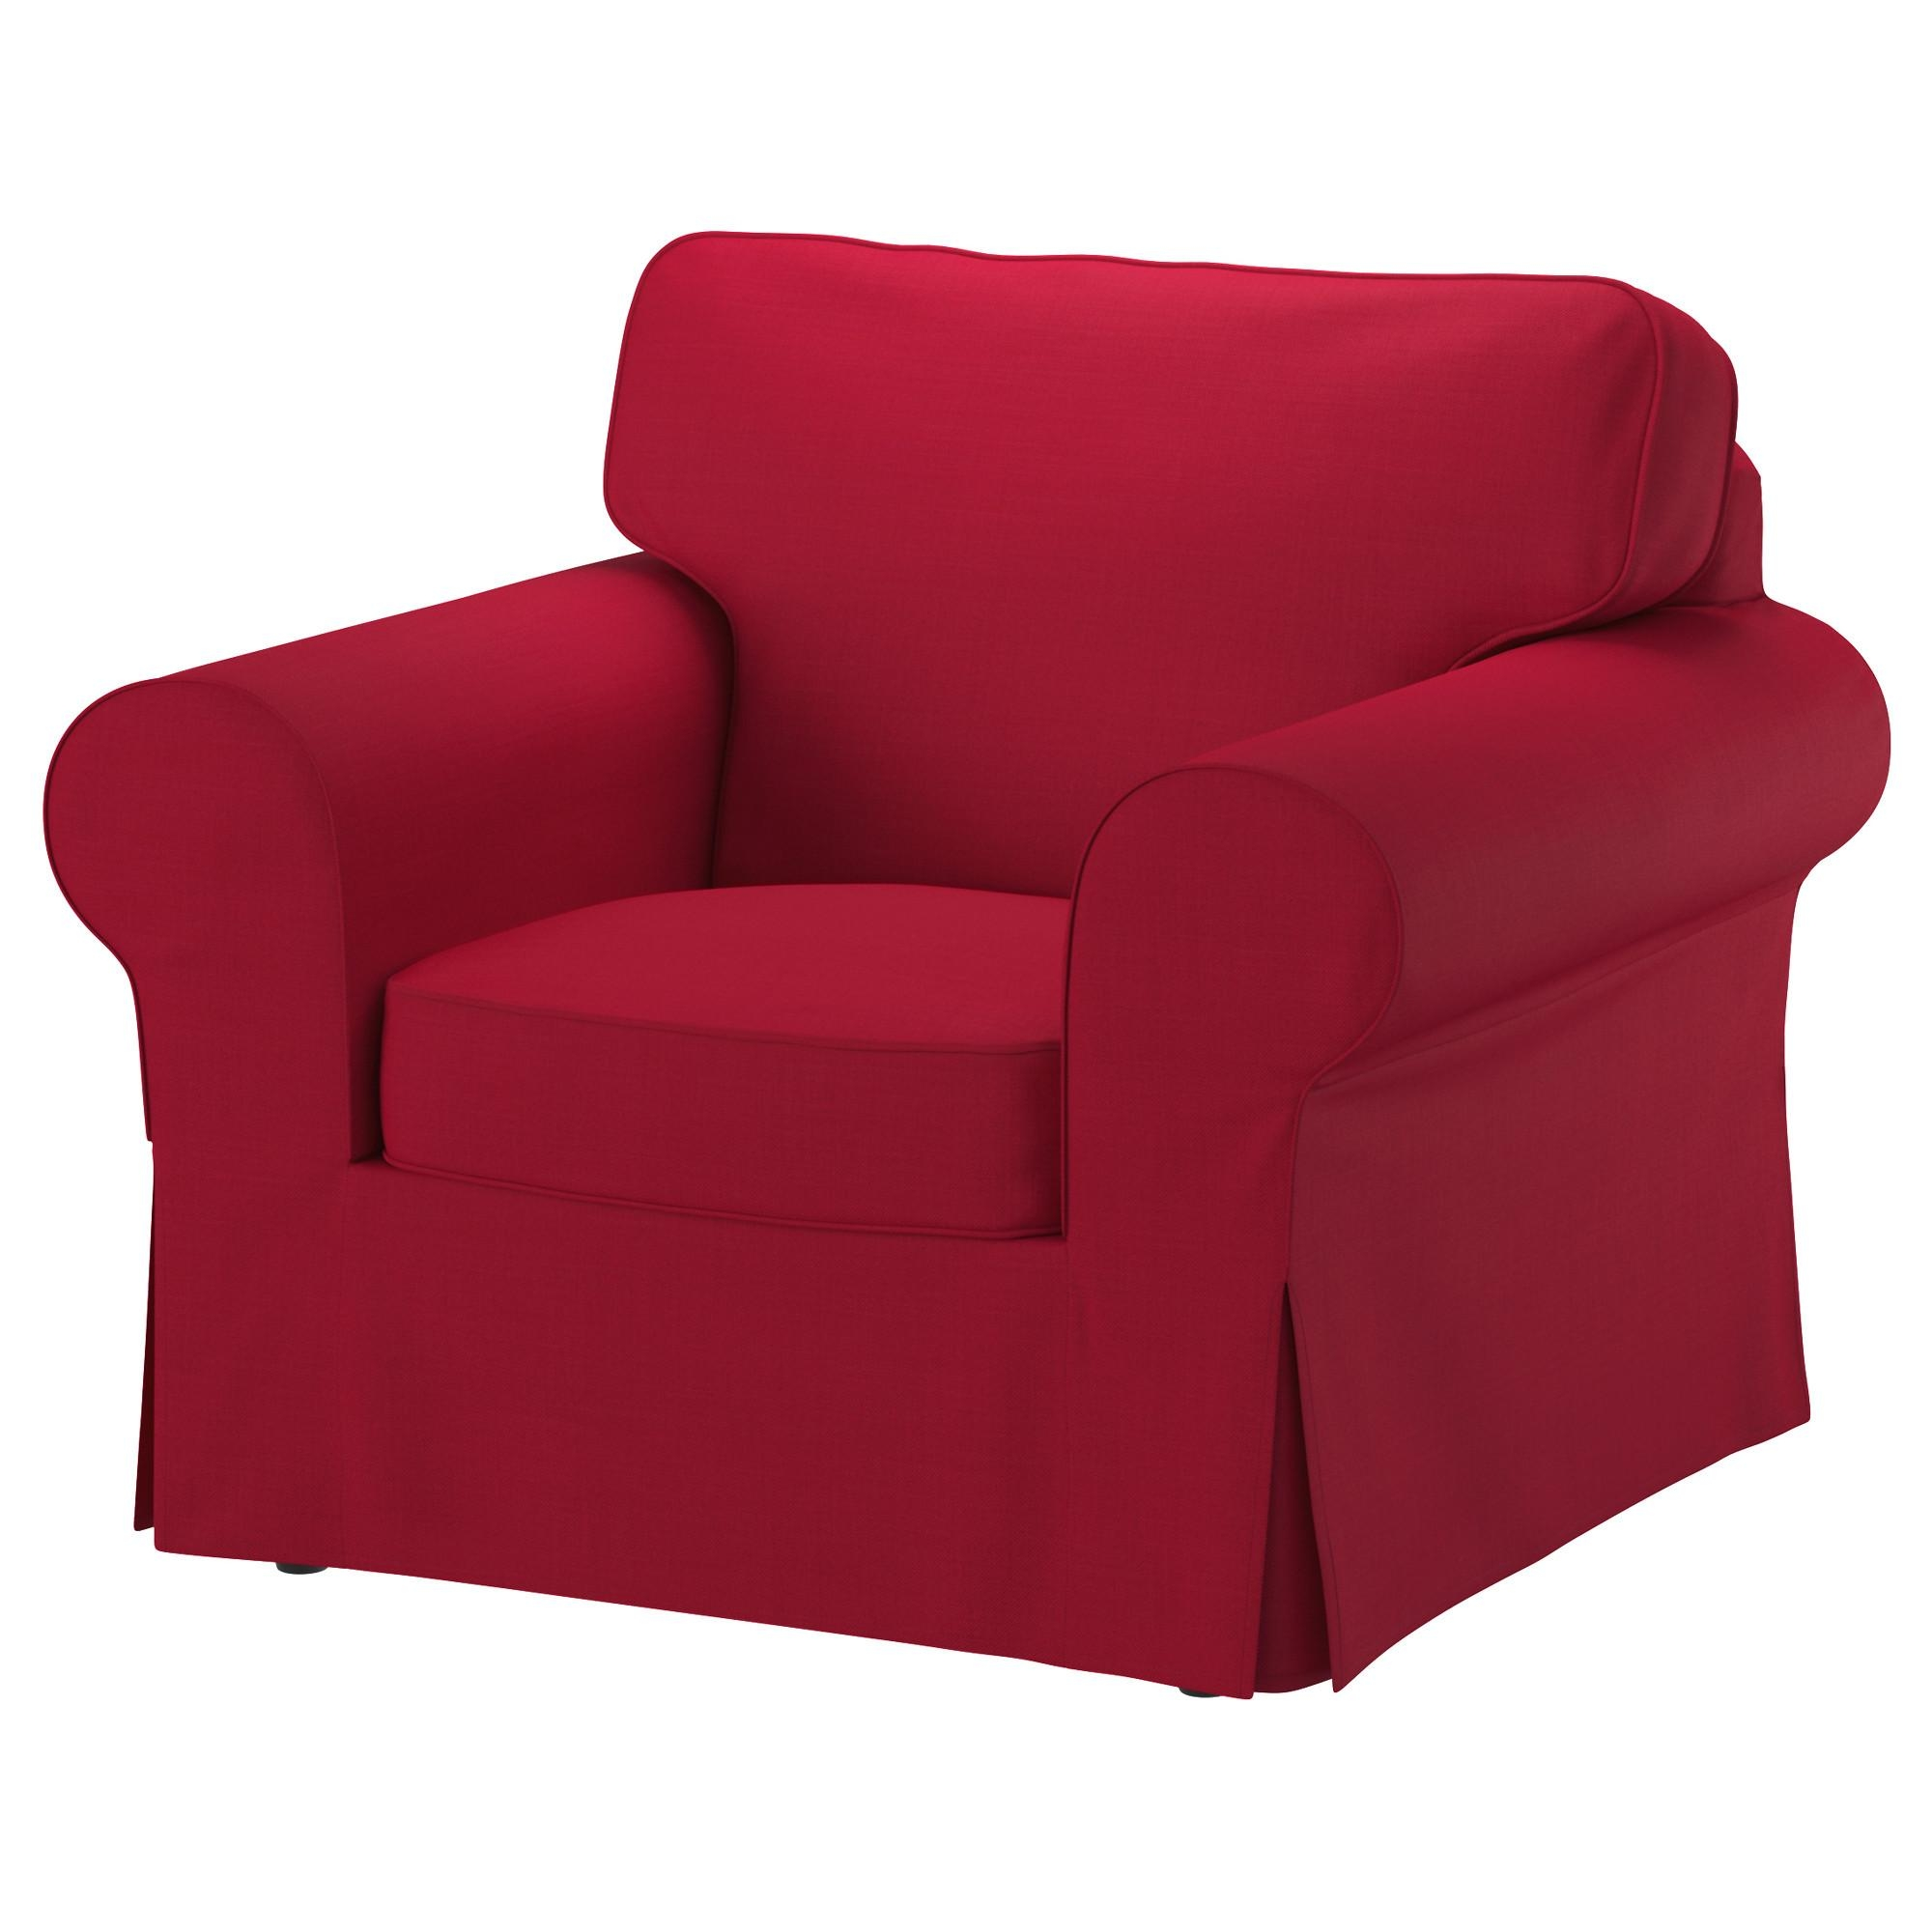 Furniture: Give Your Sofa Fresh New Look With Ikea Ektorp Chair For Sofa Arm Chairs (View 16 of 20)